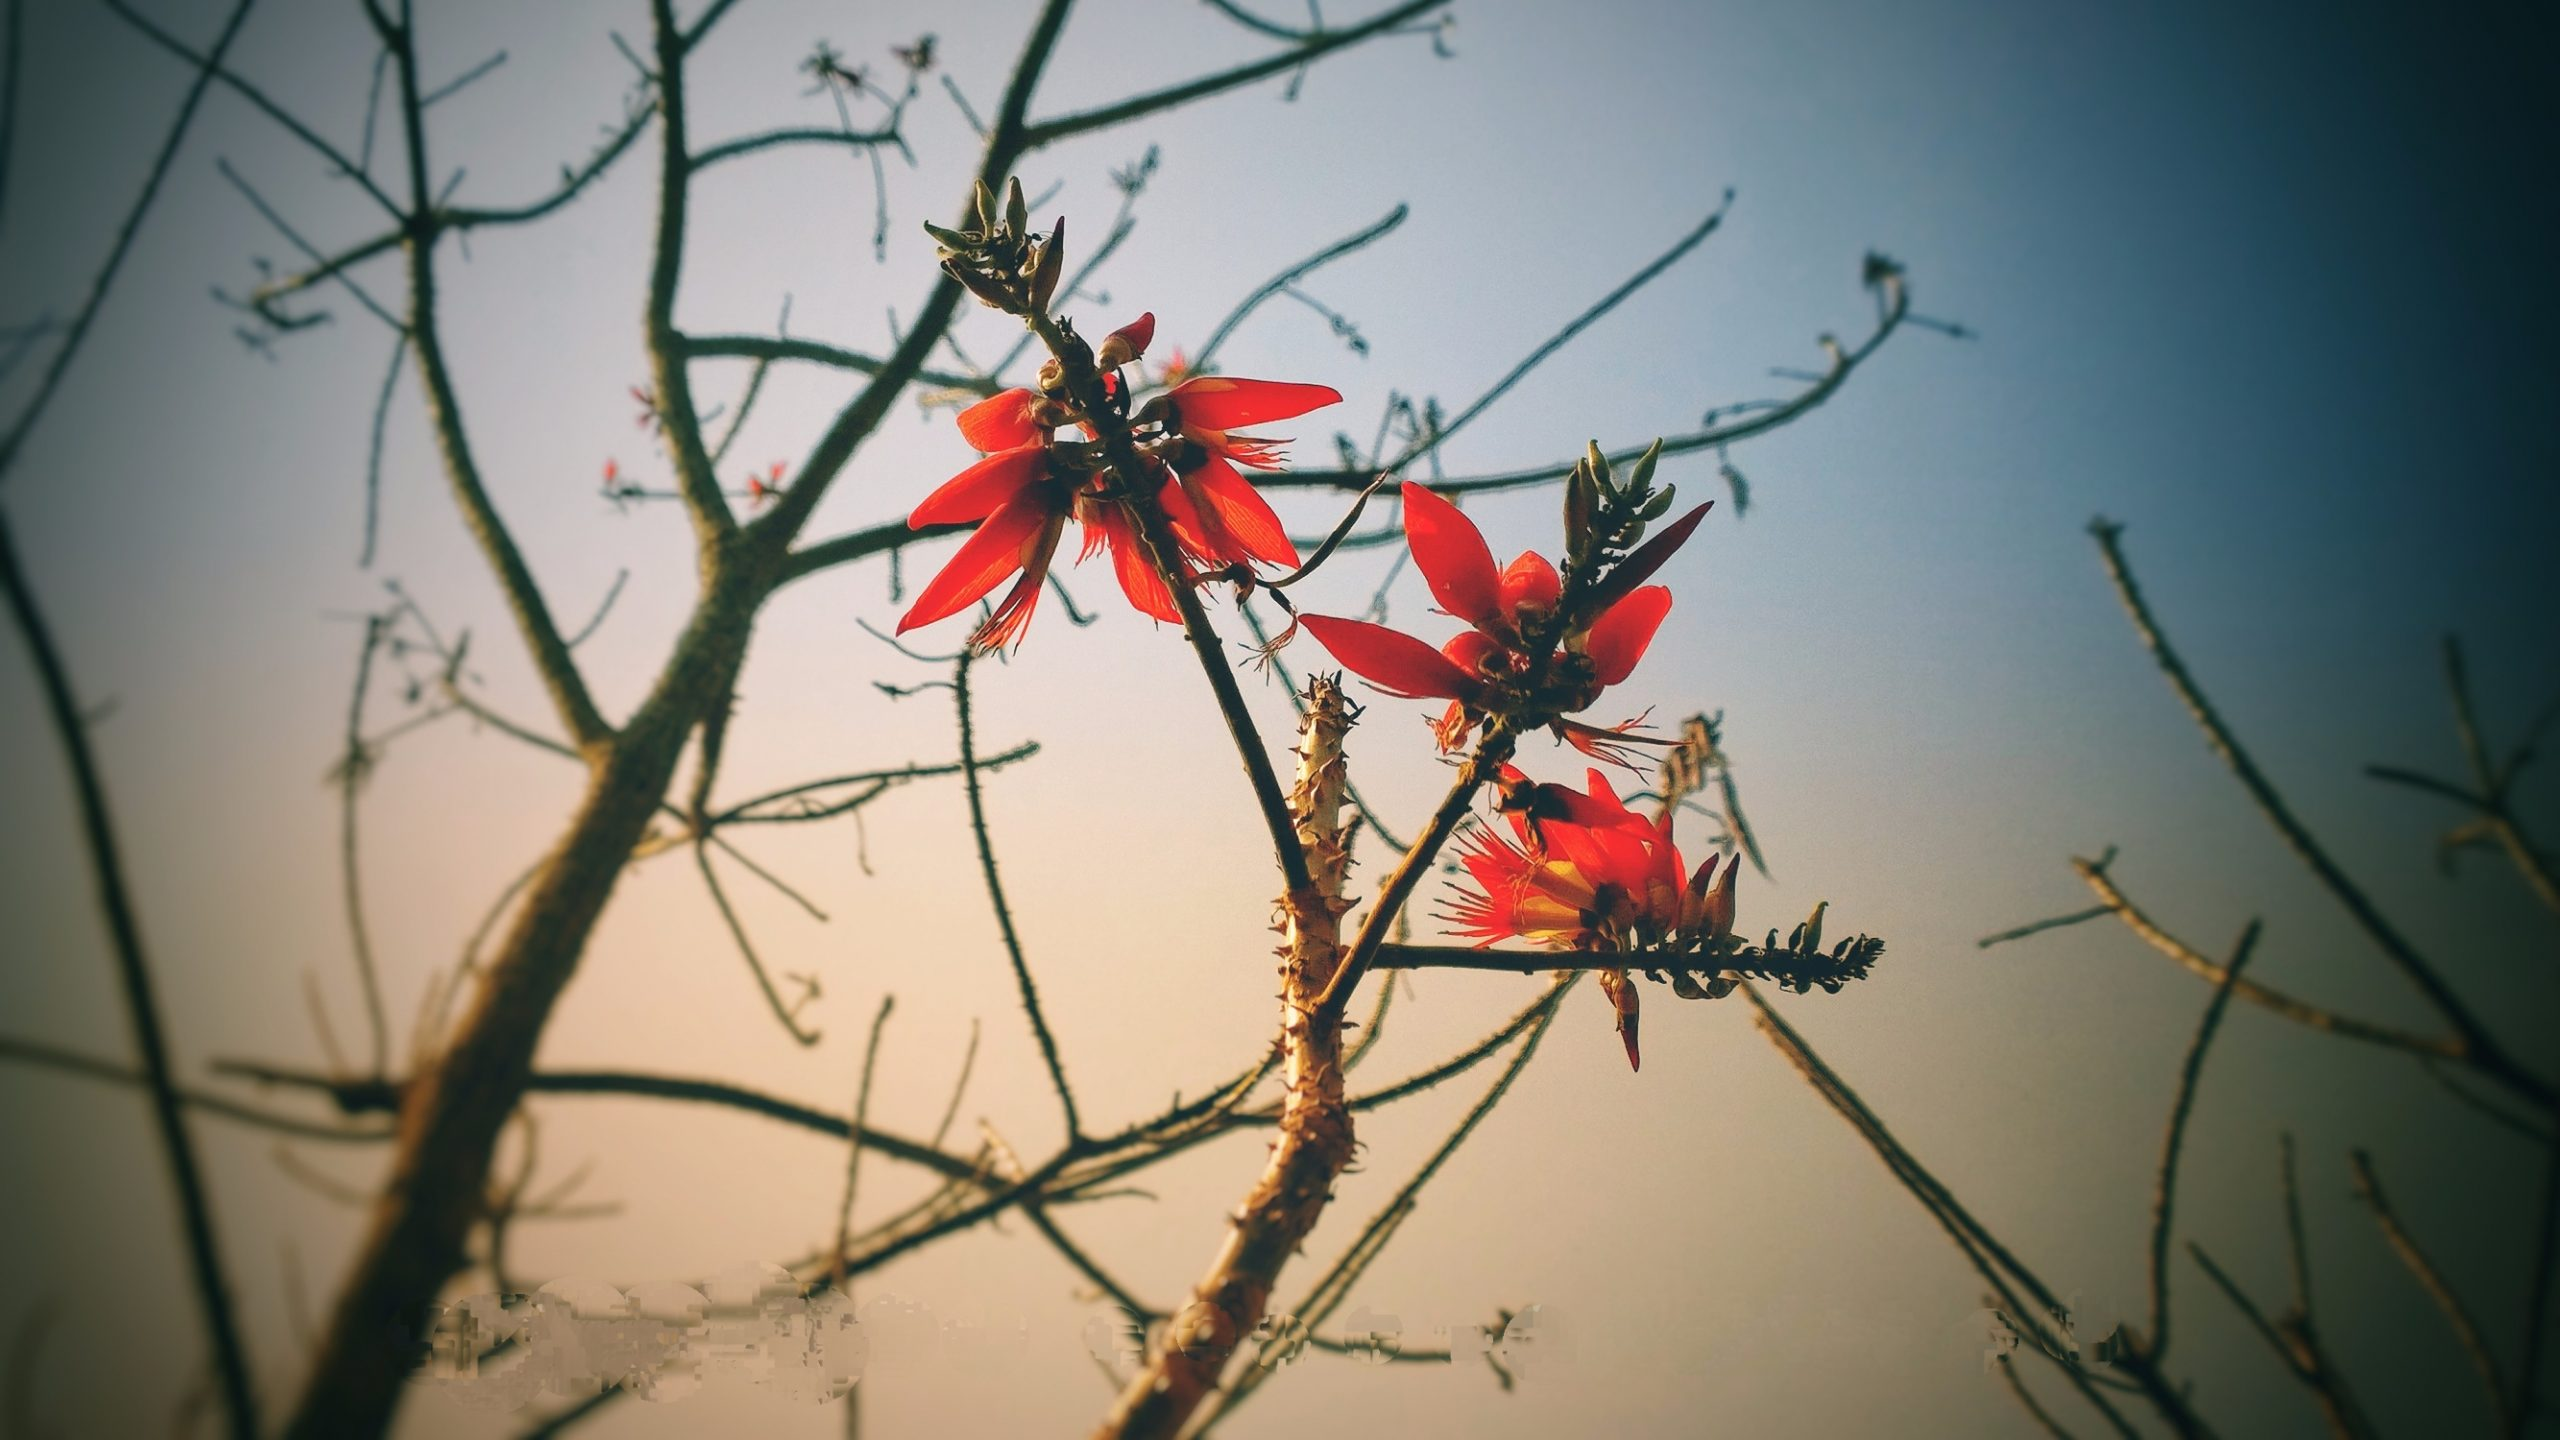 Red Flowers on the Tree